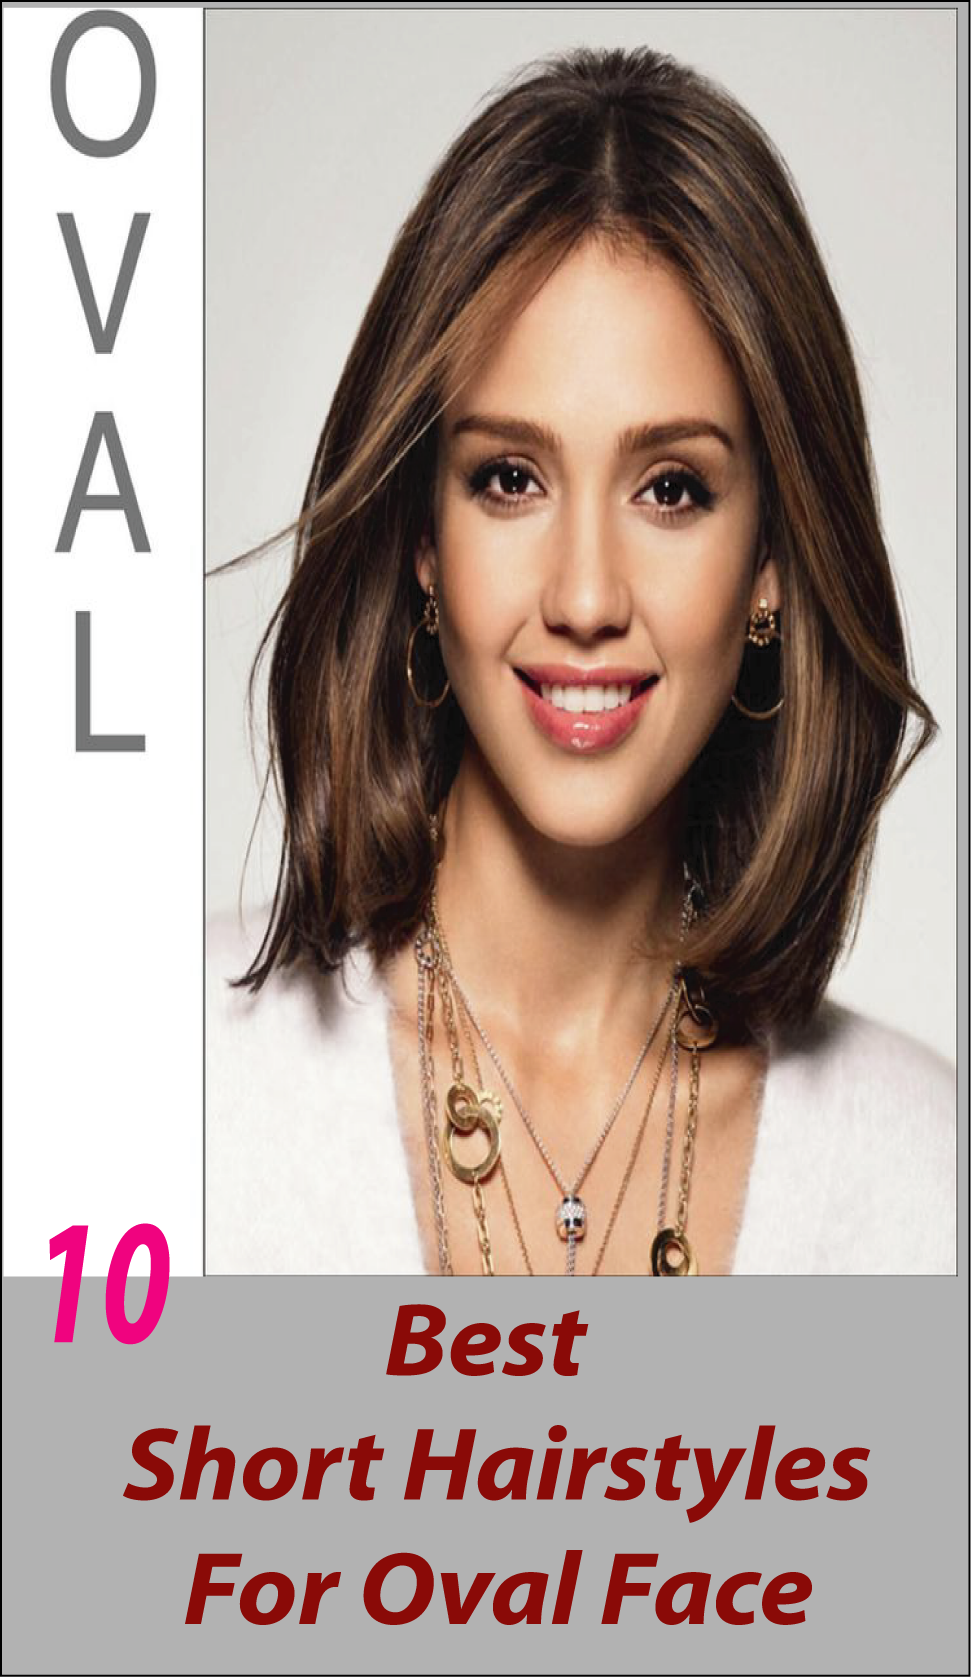 10 Best Short Hairstyles For Oval Face Hairstyles Beauty